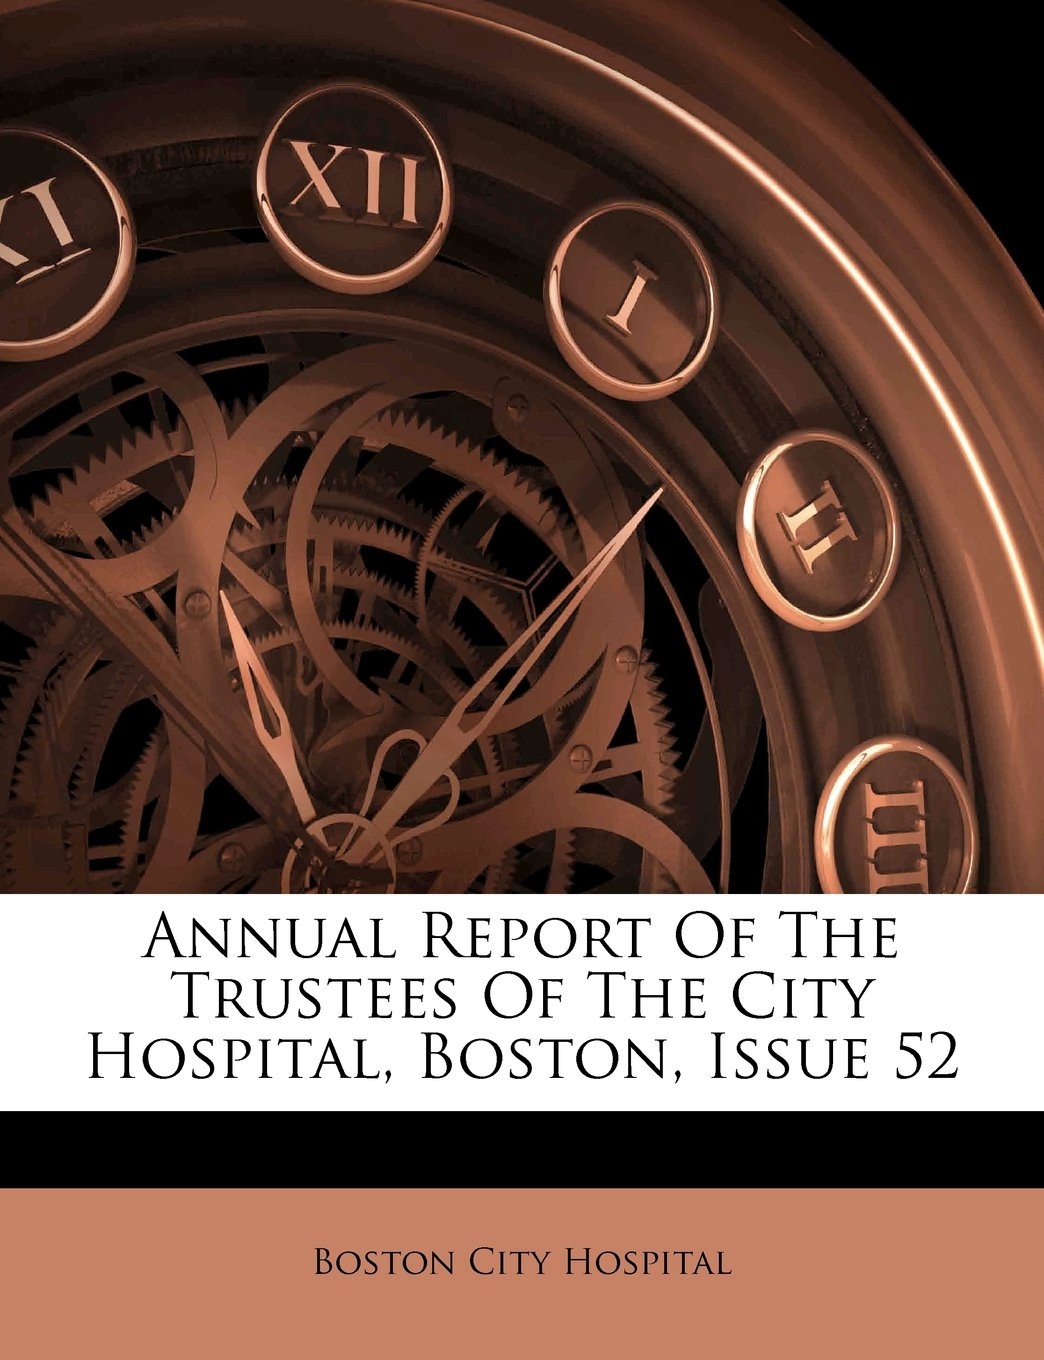 Download Annual Report Of The Trustees Of The City Hospital, Boston, Issue 52 ebook